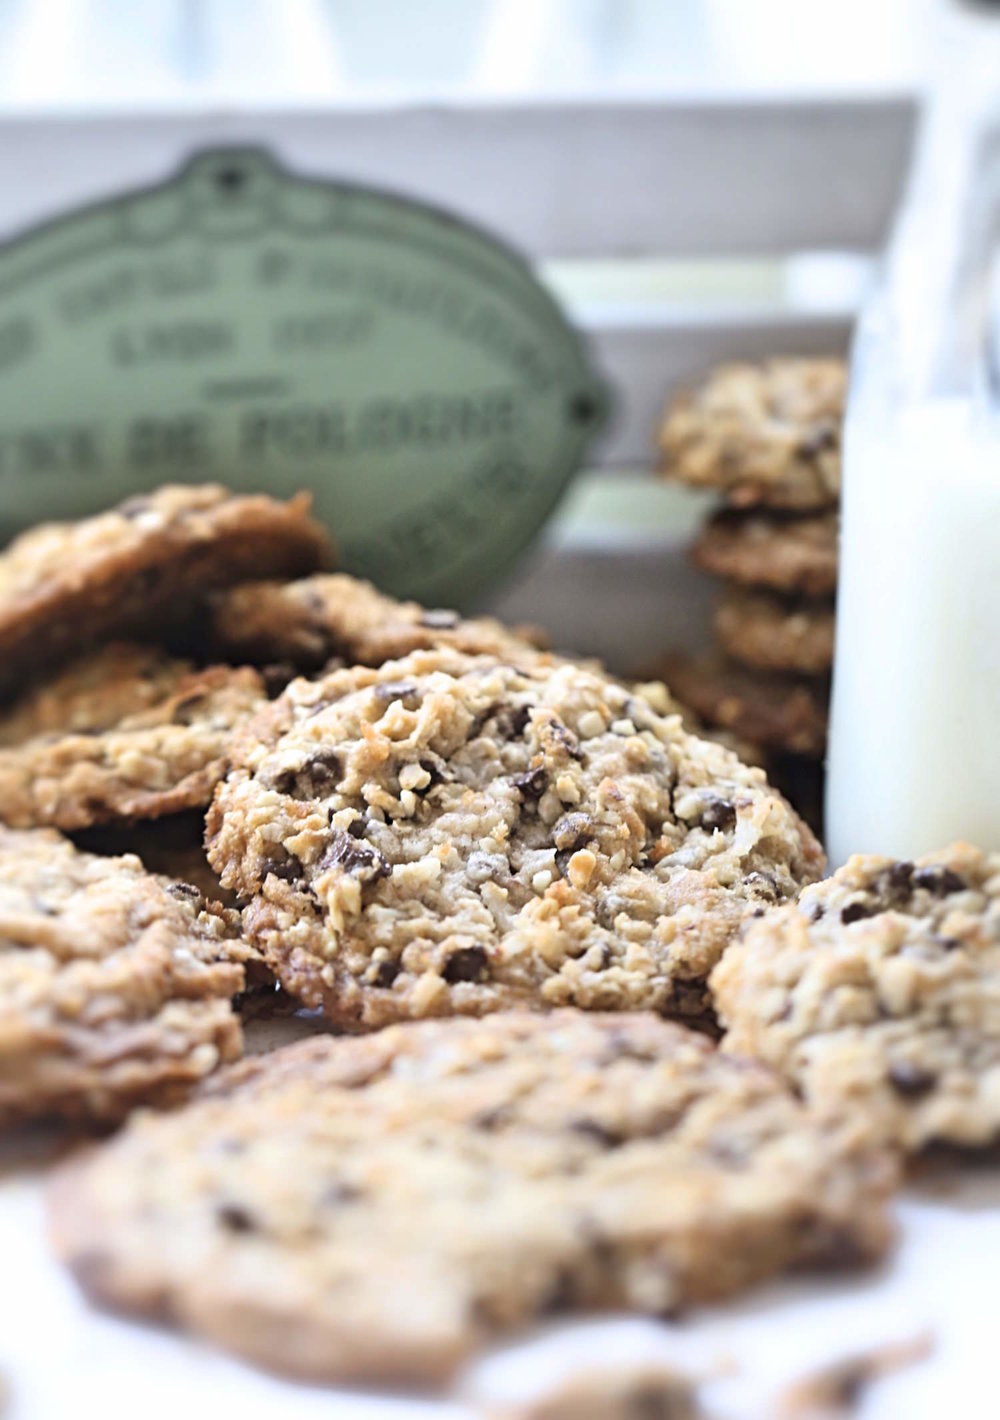 Thin and Chewy Everything Cookies: super chewy coconut oil cookies packed with chocolate chips, oats, nuts, and coconut. Greasy and addictive! | TrufflesandTrends.com